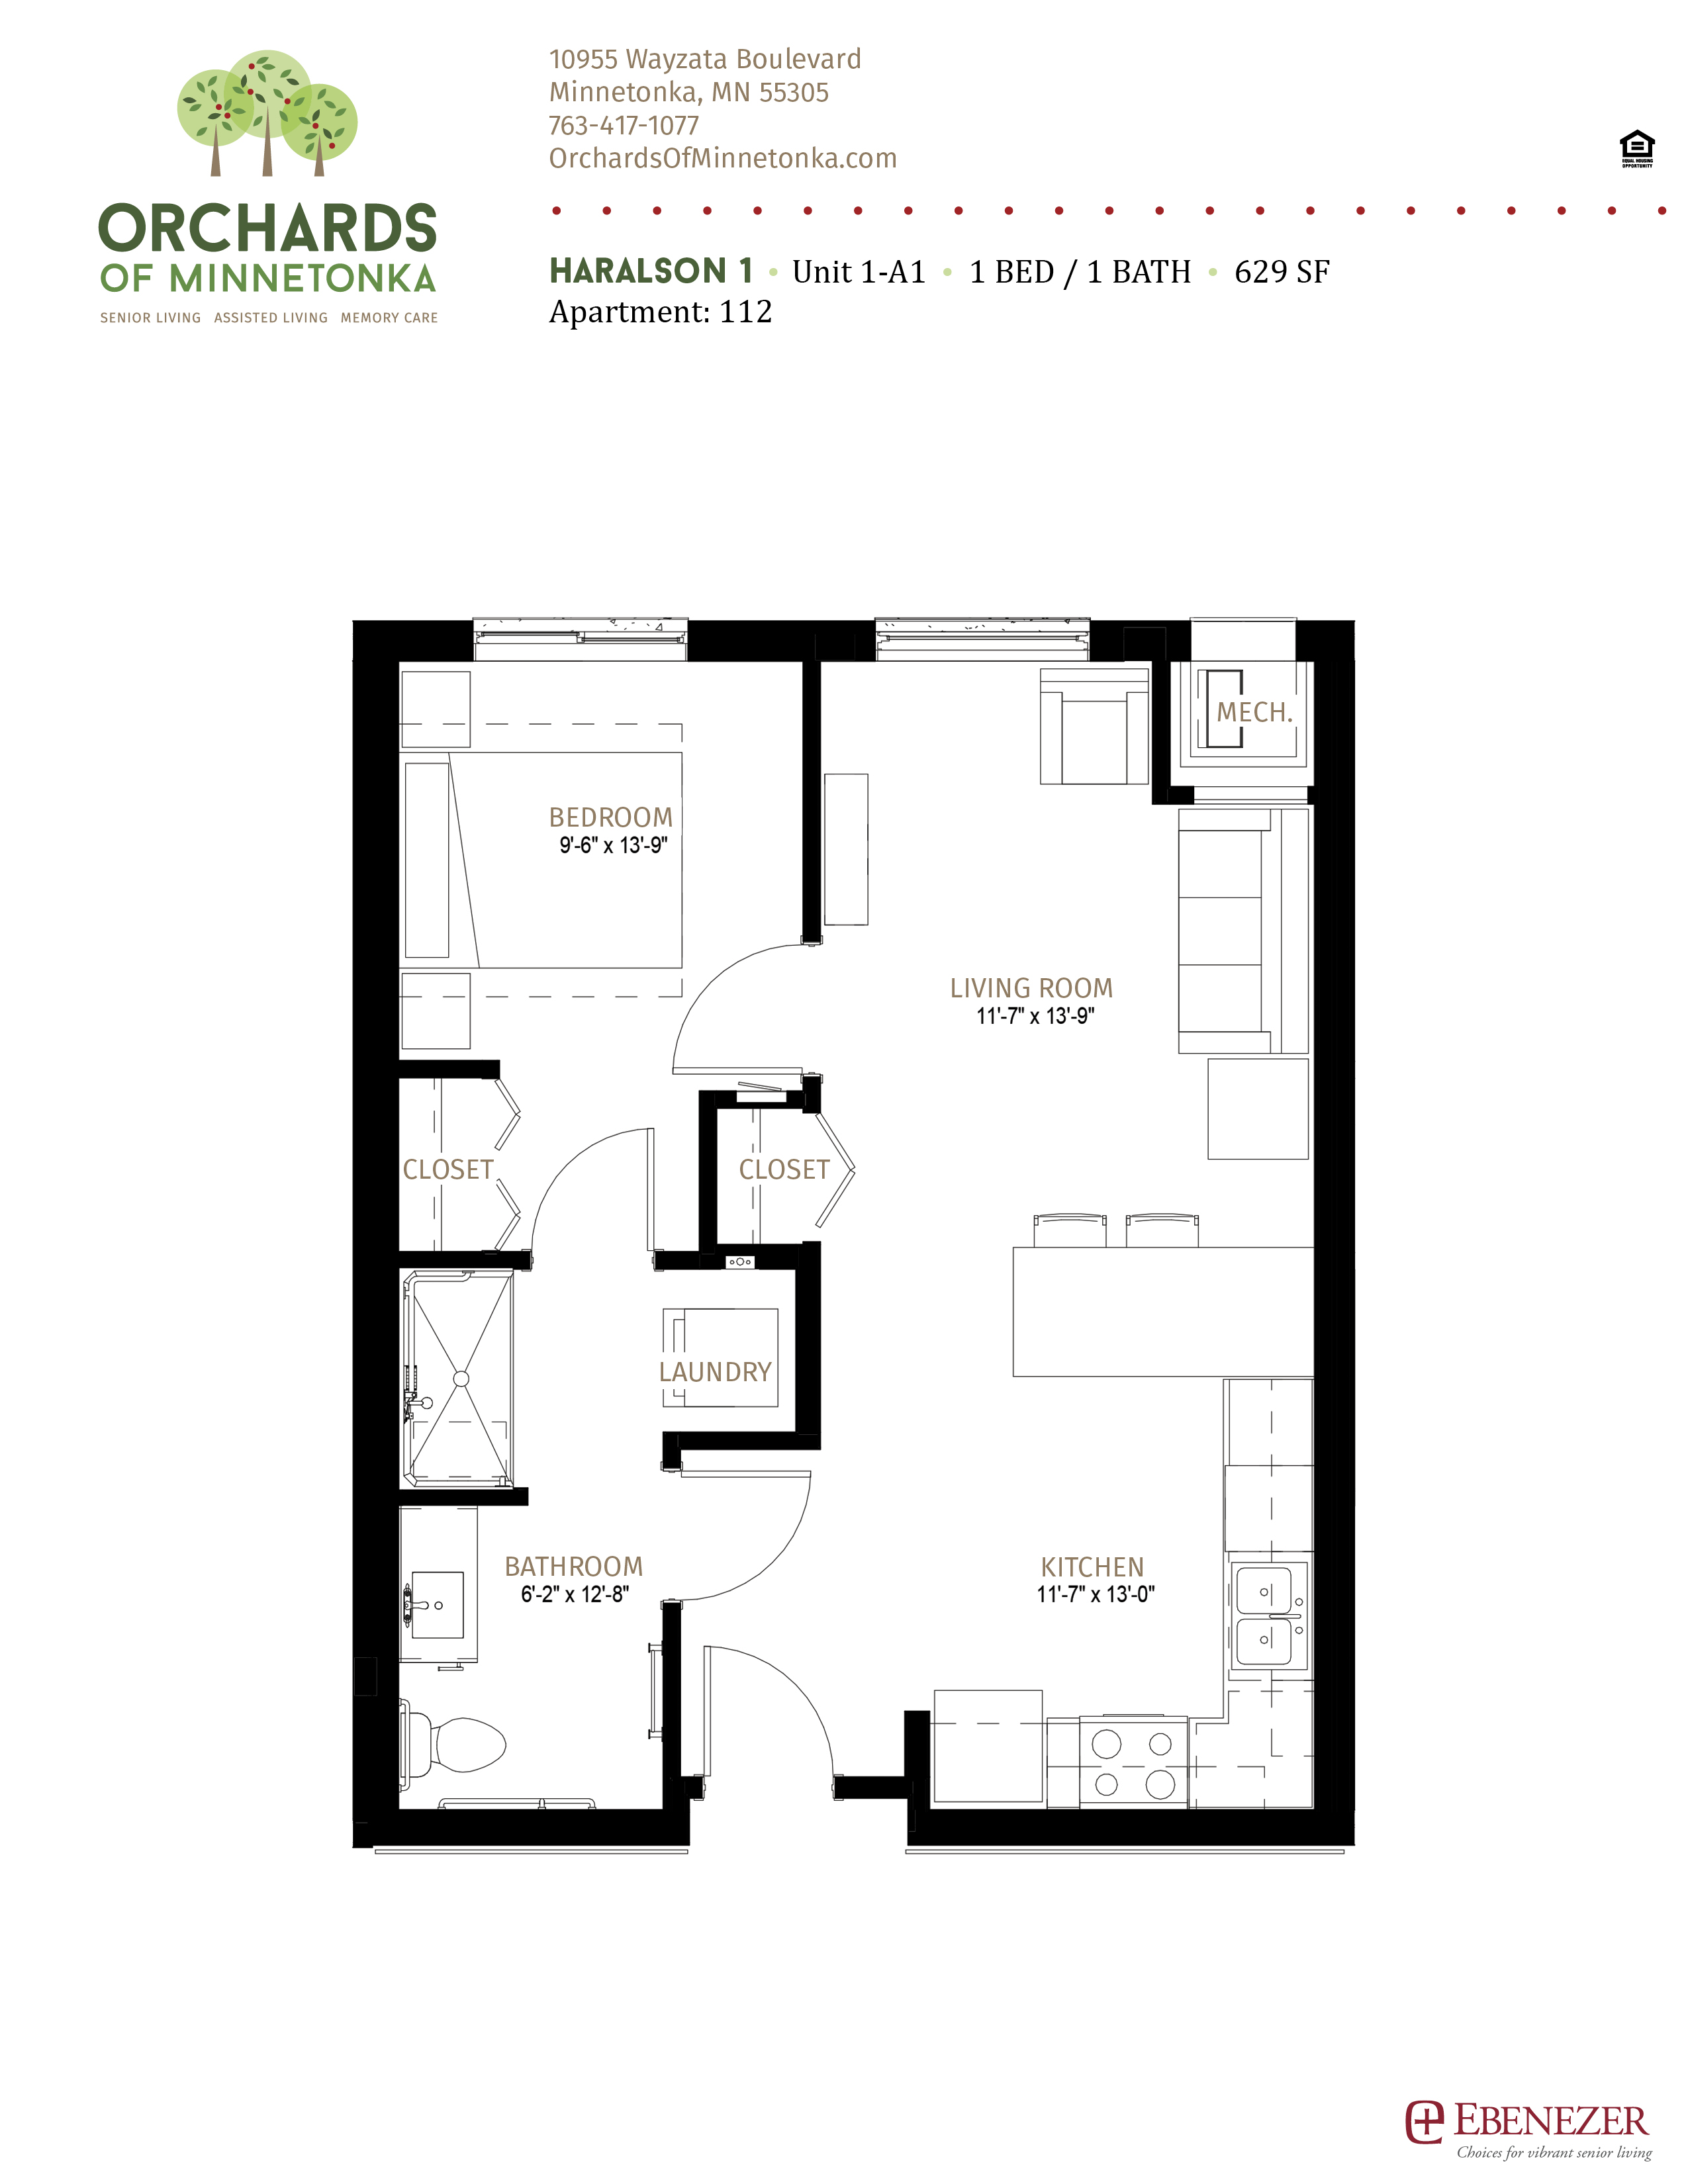 Orchards of Minnetonka - Haralson - Senior Living Unit 1 - A1